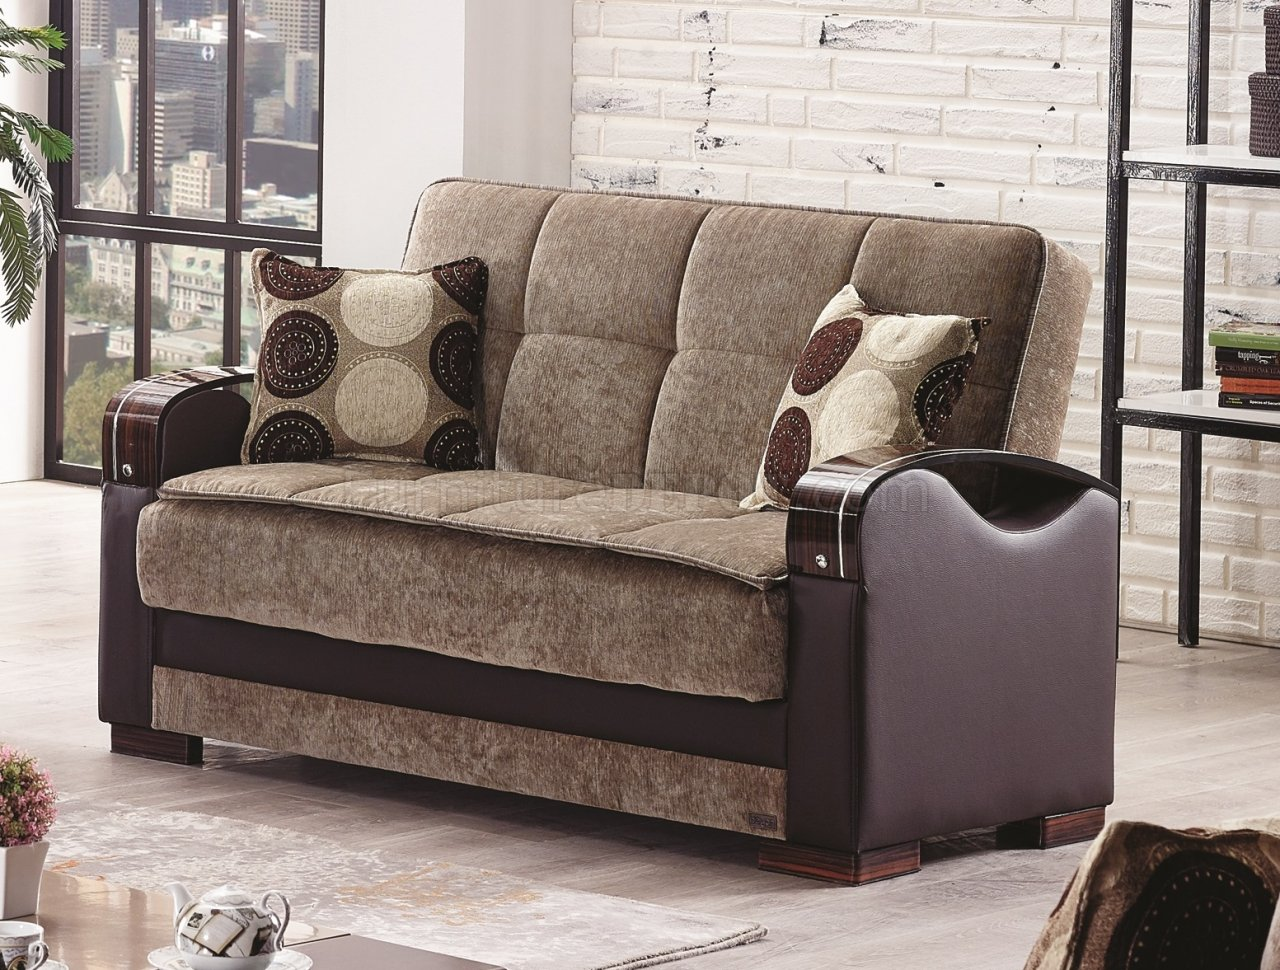 Rochester Sofa Bed In Light Brown Fabric By Empire W Options